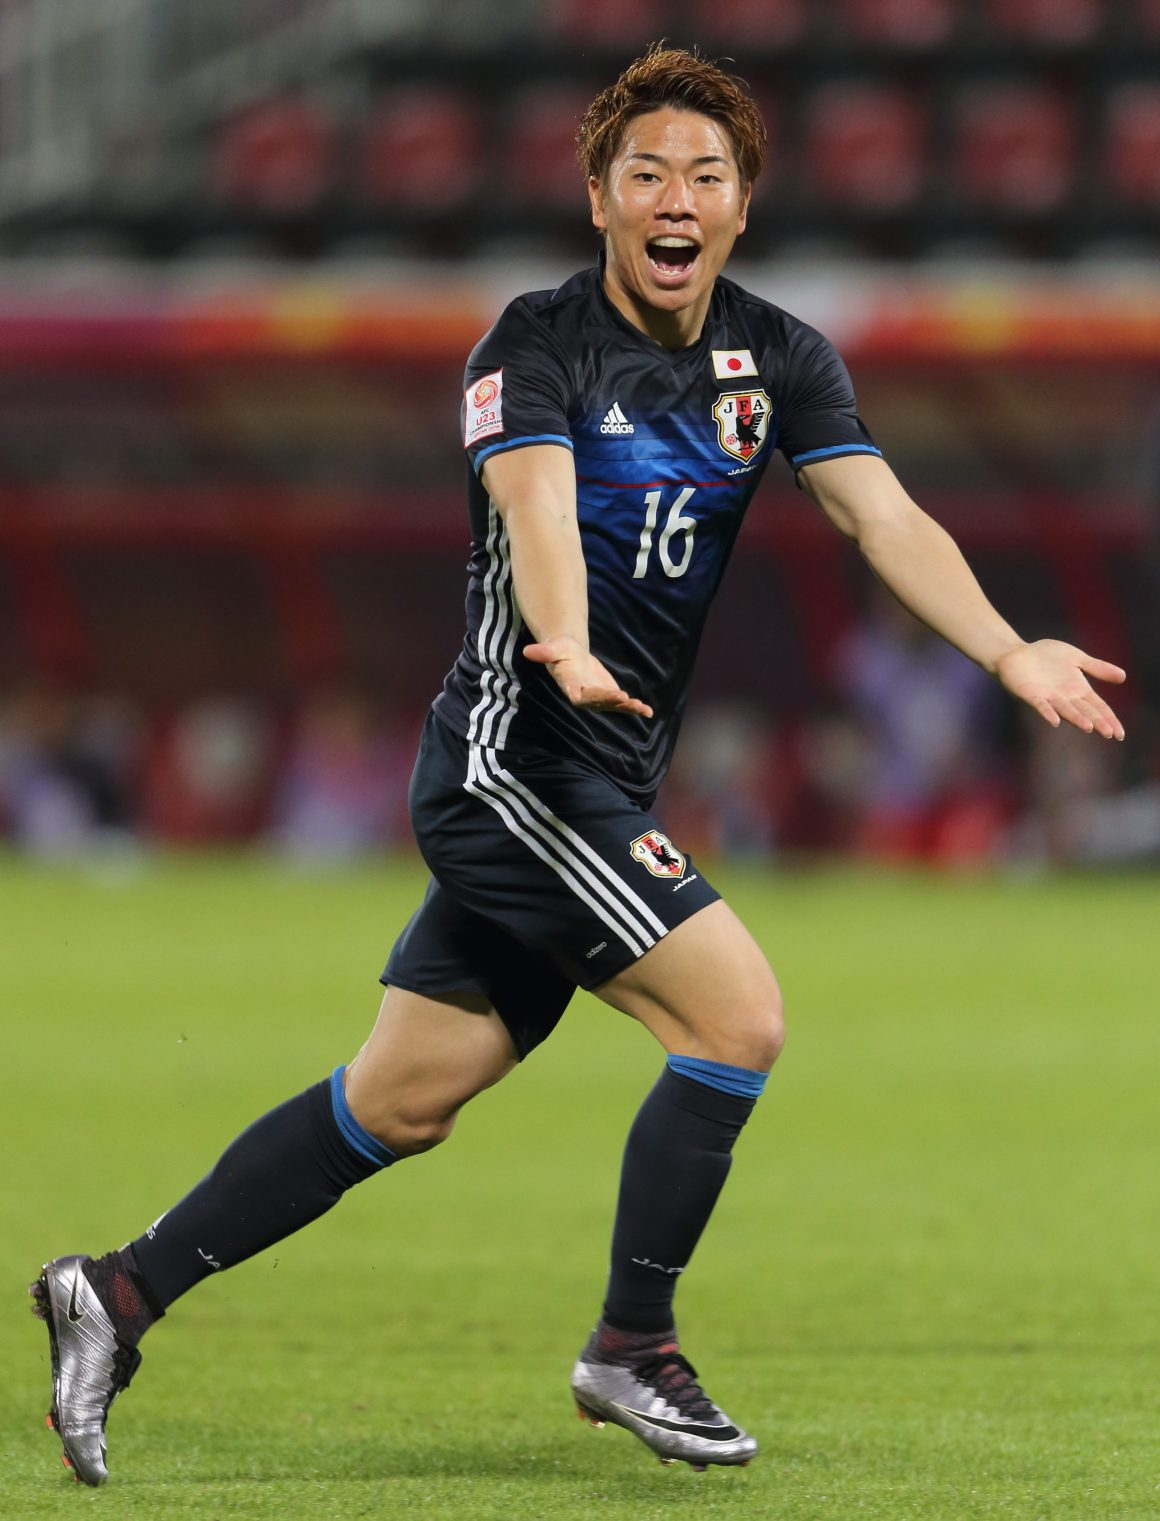 Arsenal transfer news: Arsenal sign Japanese international Takuma Asano as Mikel Arteta confirms he has moved to Manchester City